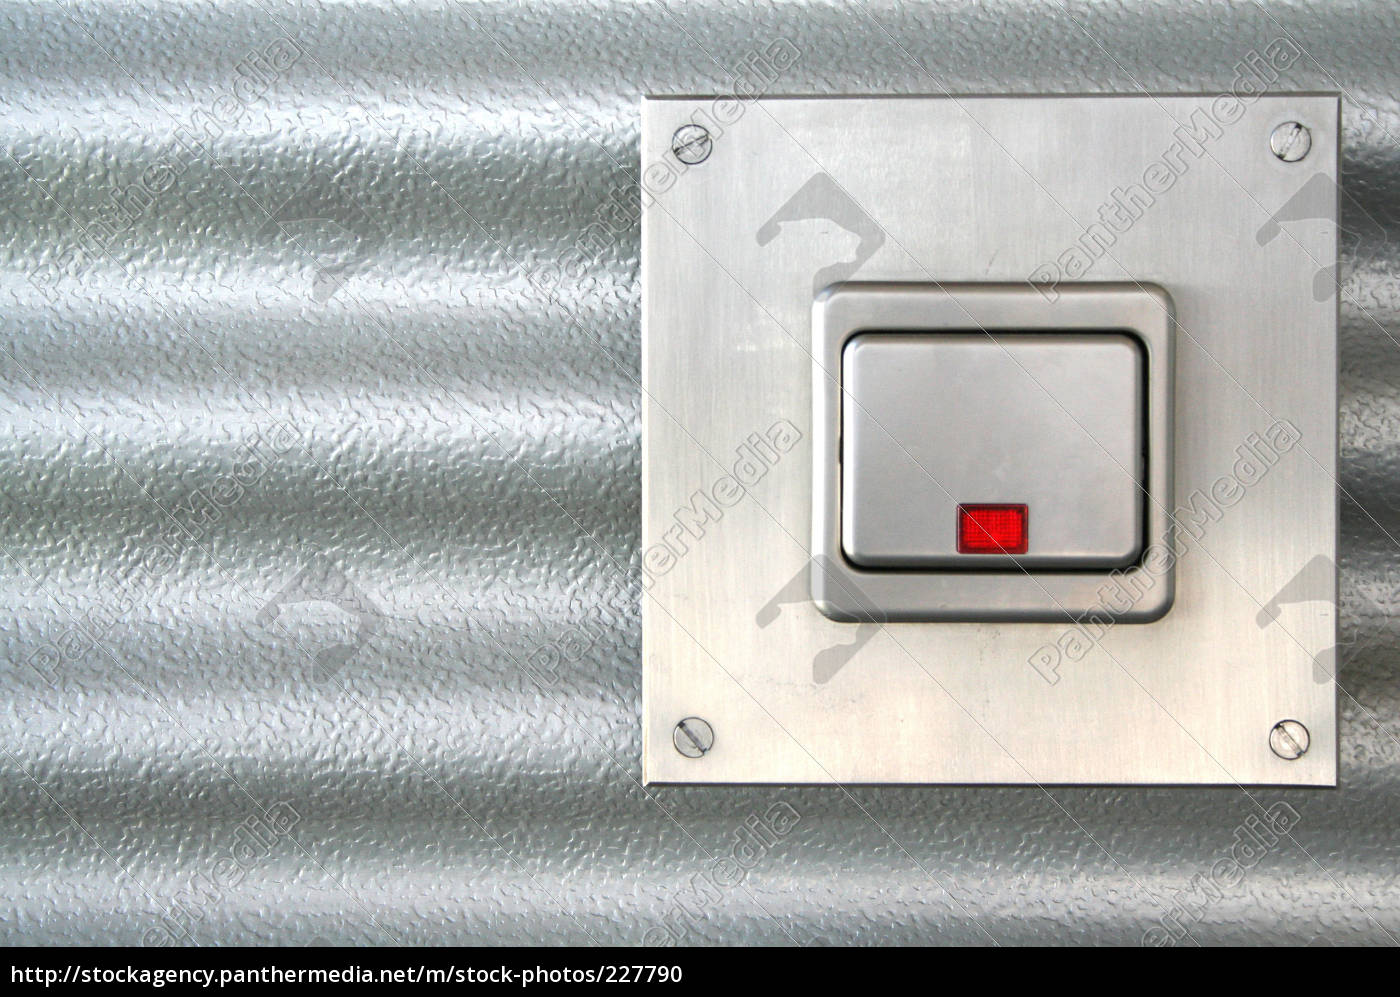 light, switch - 227790